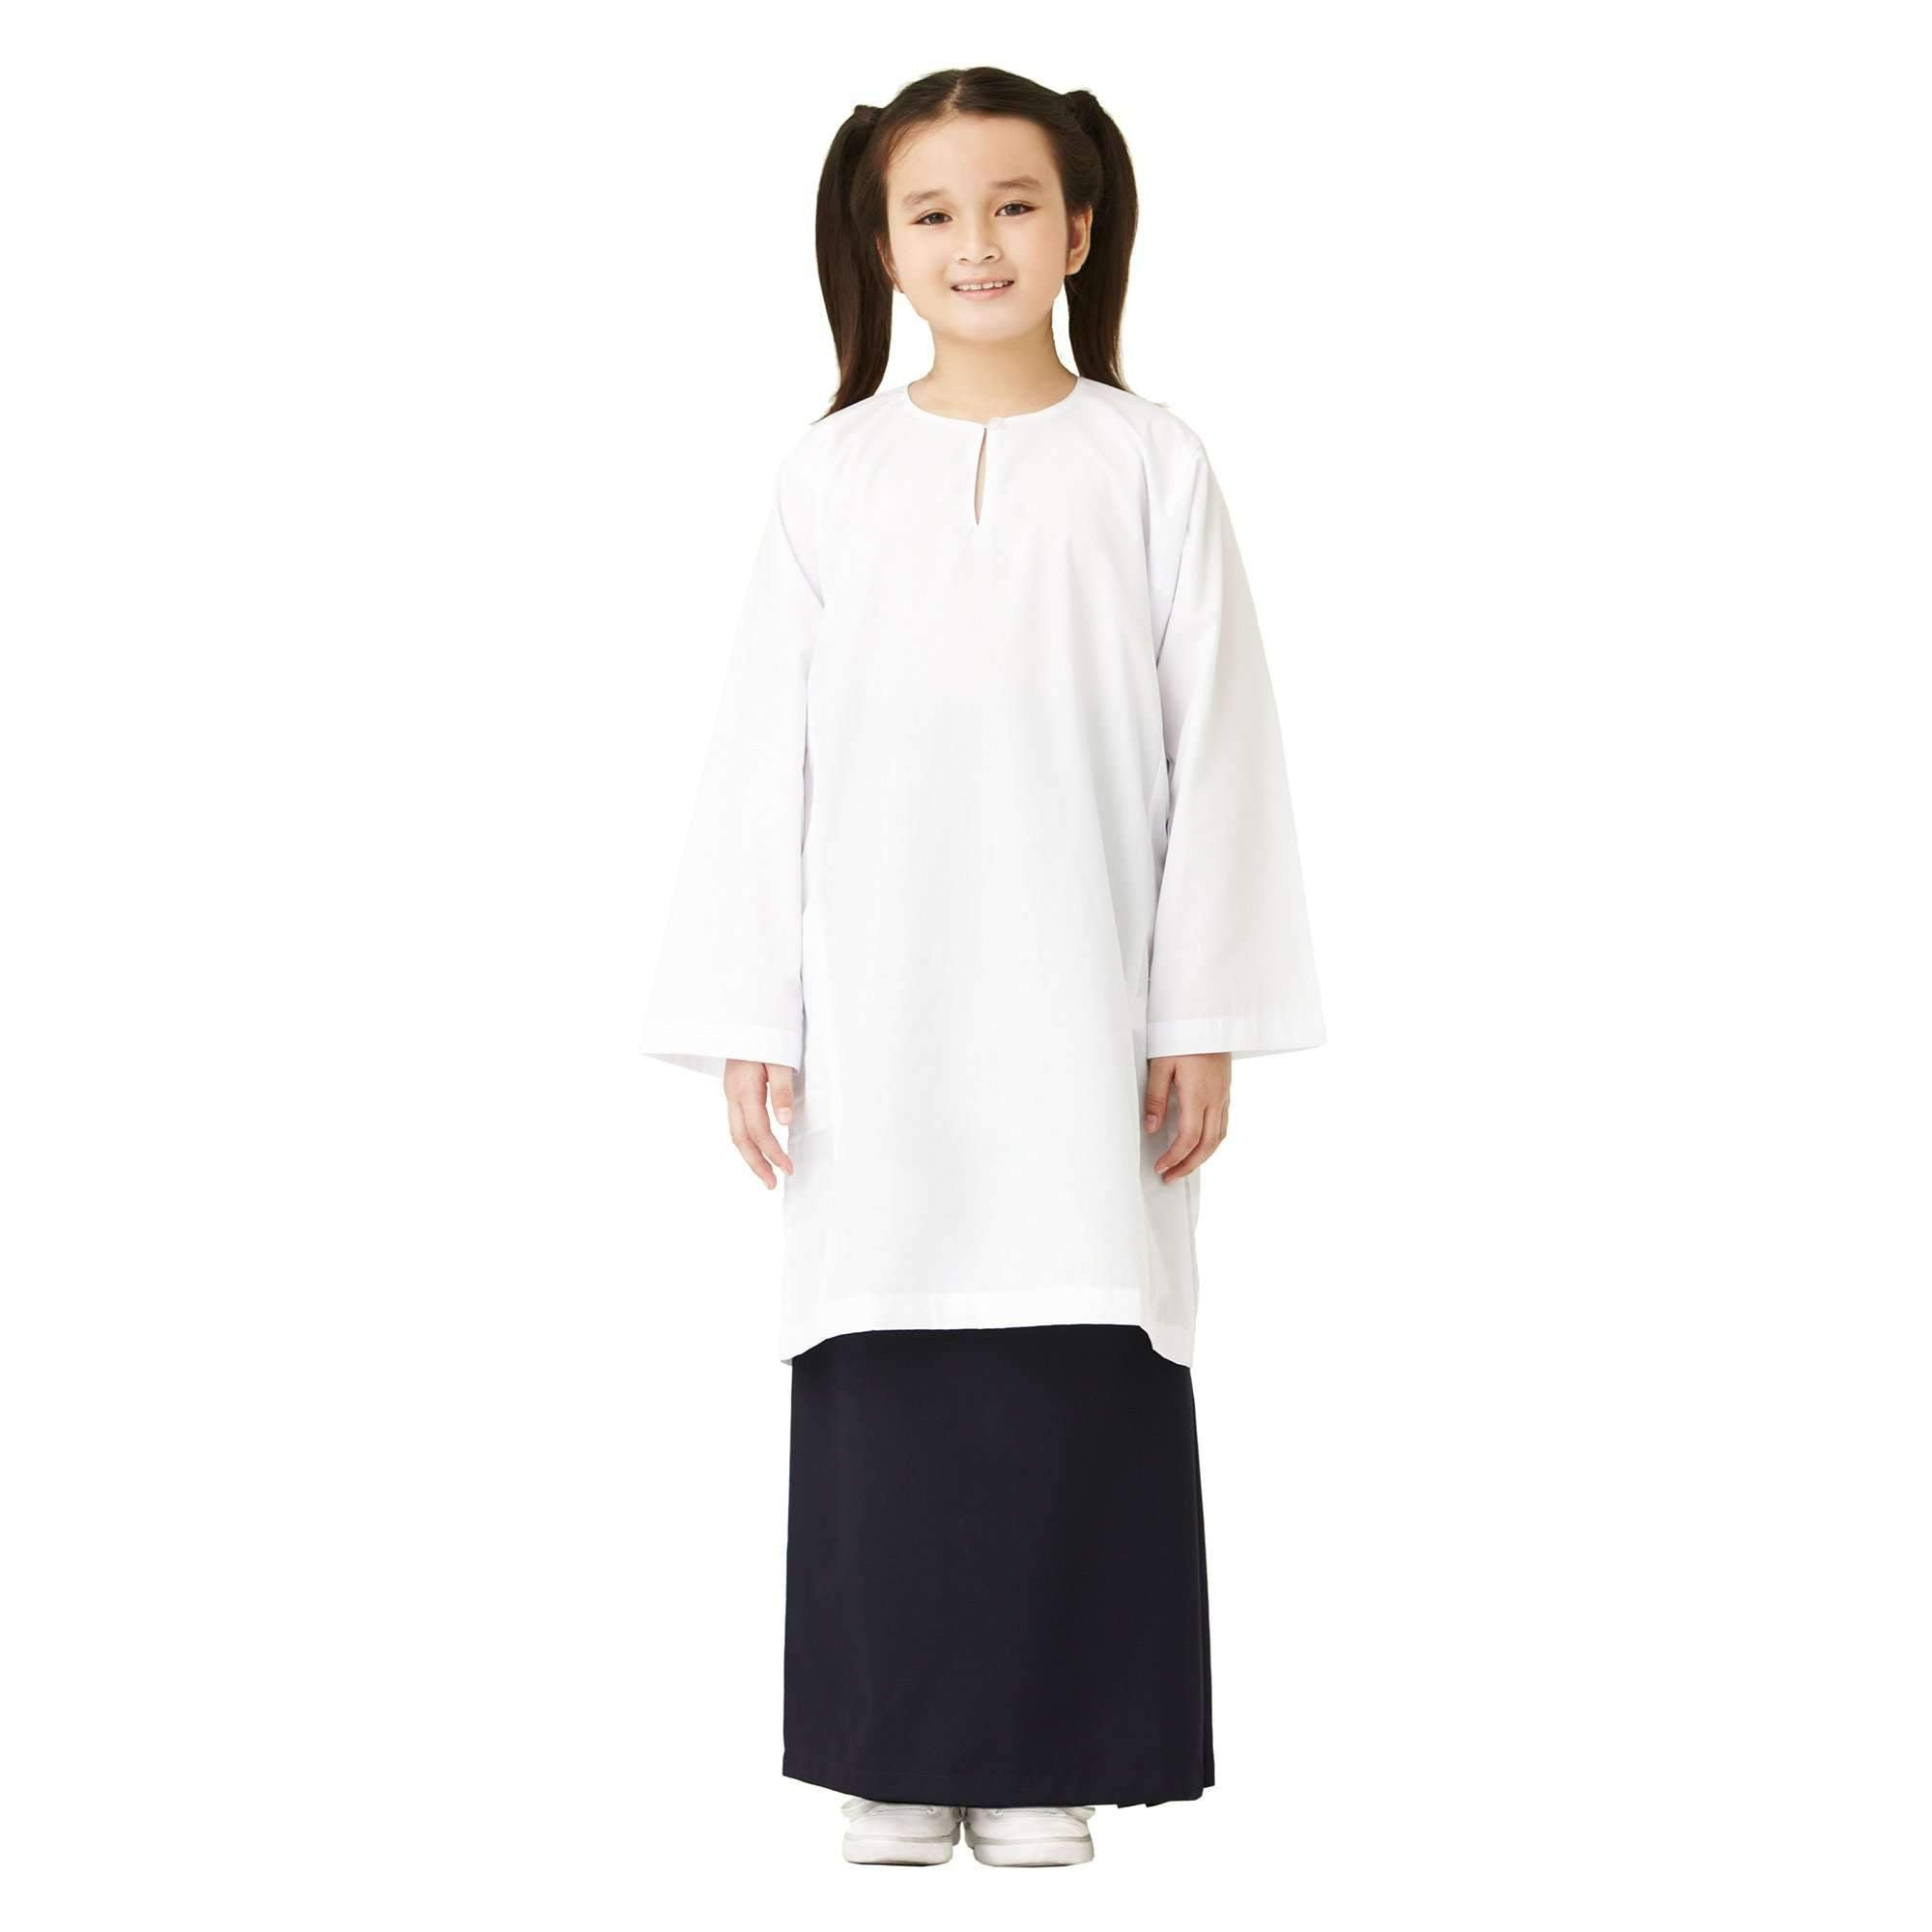 K-Primary Girl Long Sleeve Baju Kurung School Uniform Primary - White 121034-15X : Buy K-Primary online at CMG.MY